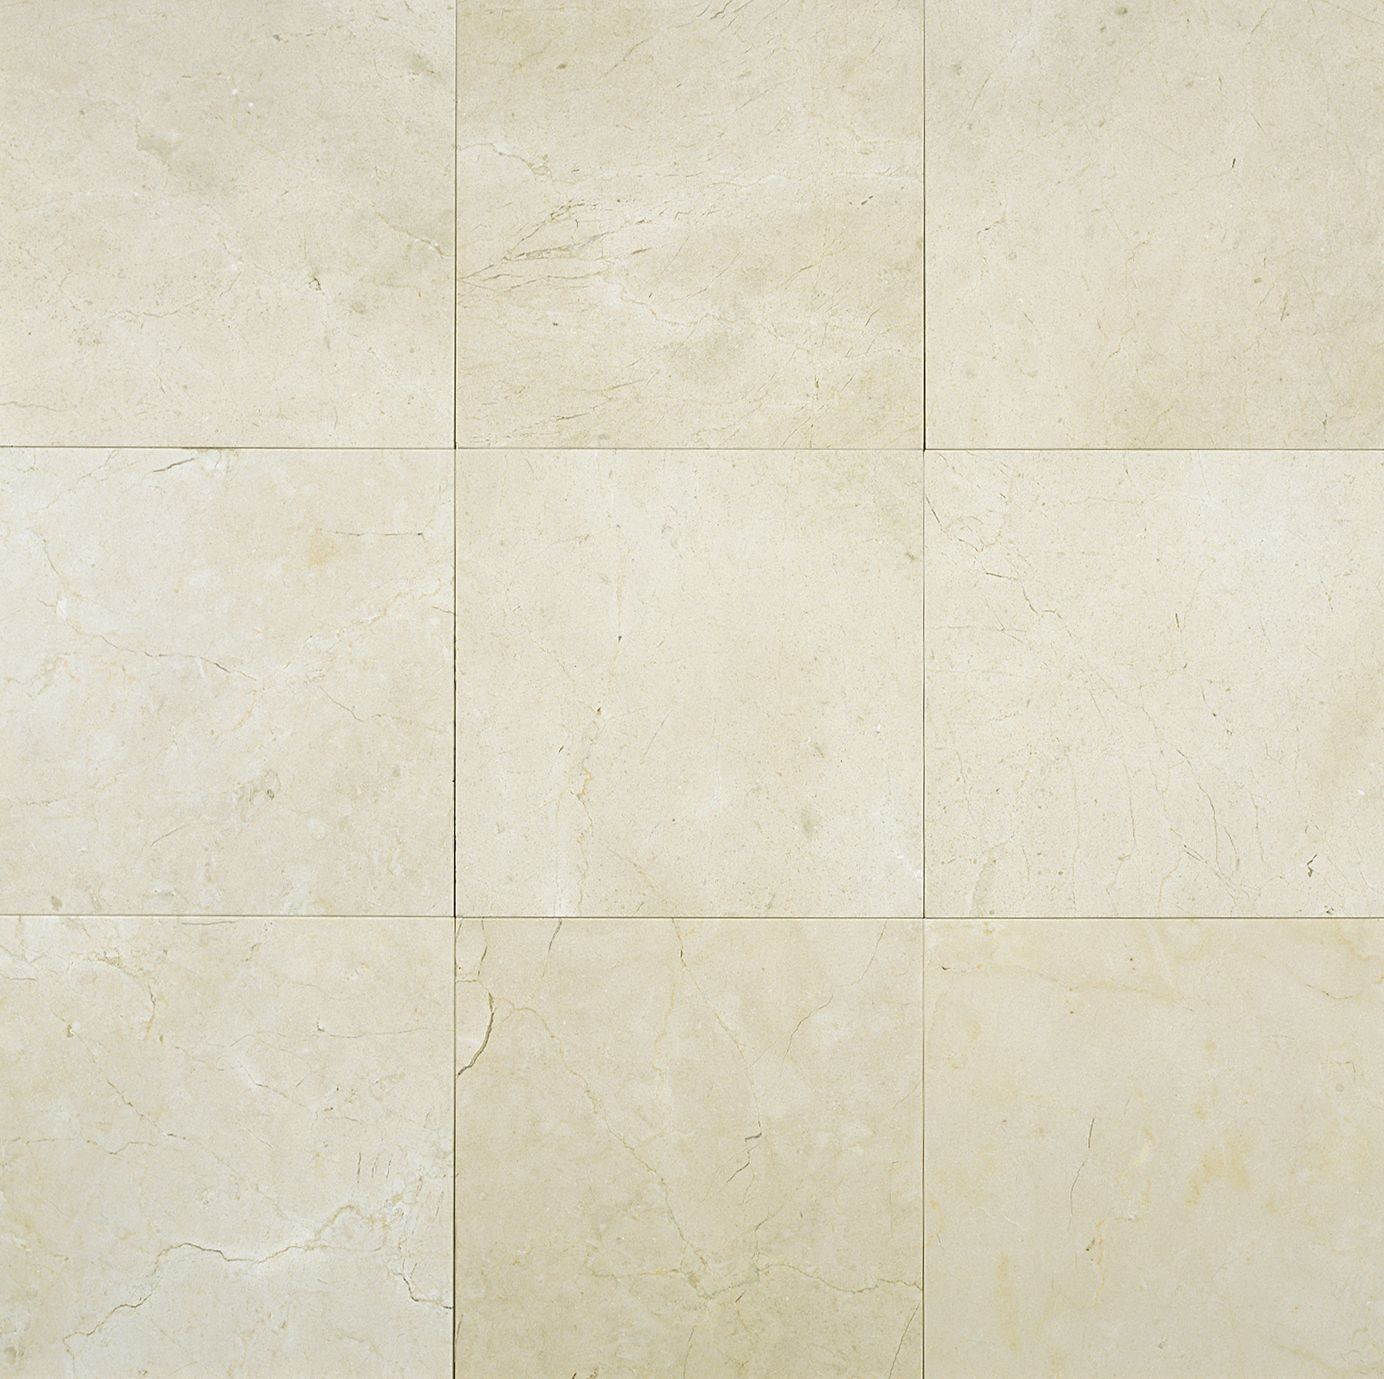 Crema Marfil Classico 6x6 Marble Tile Polished Transitional Guest Bat